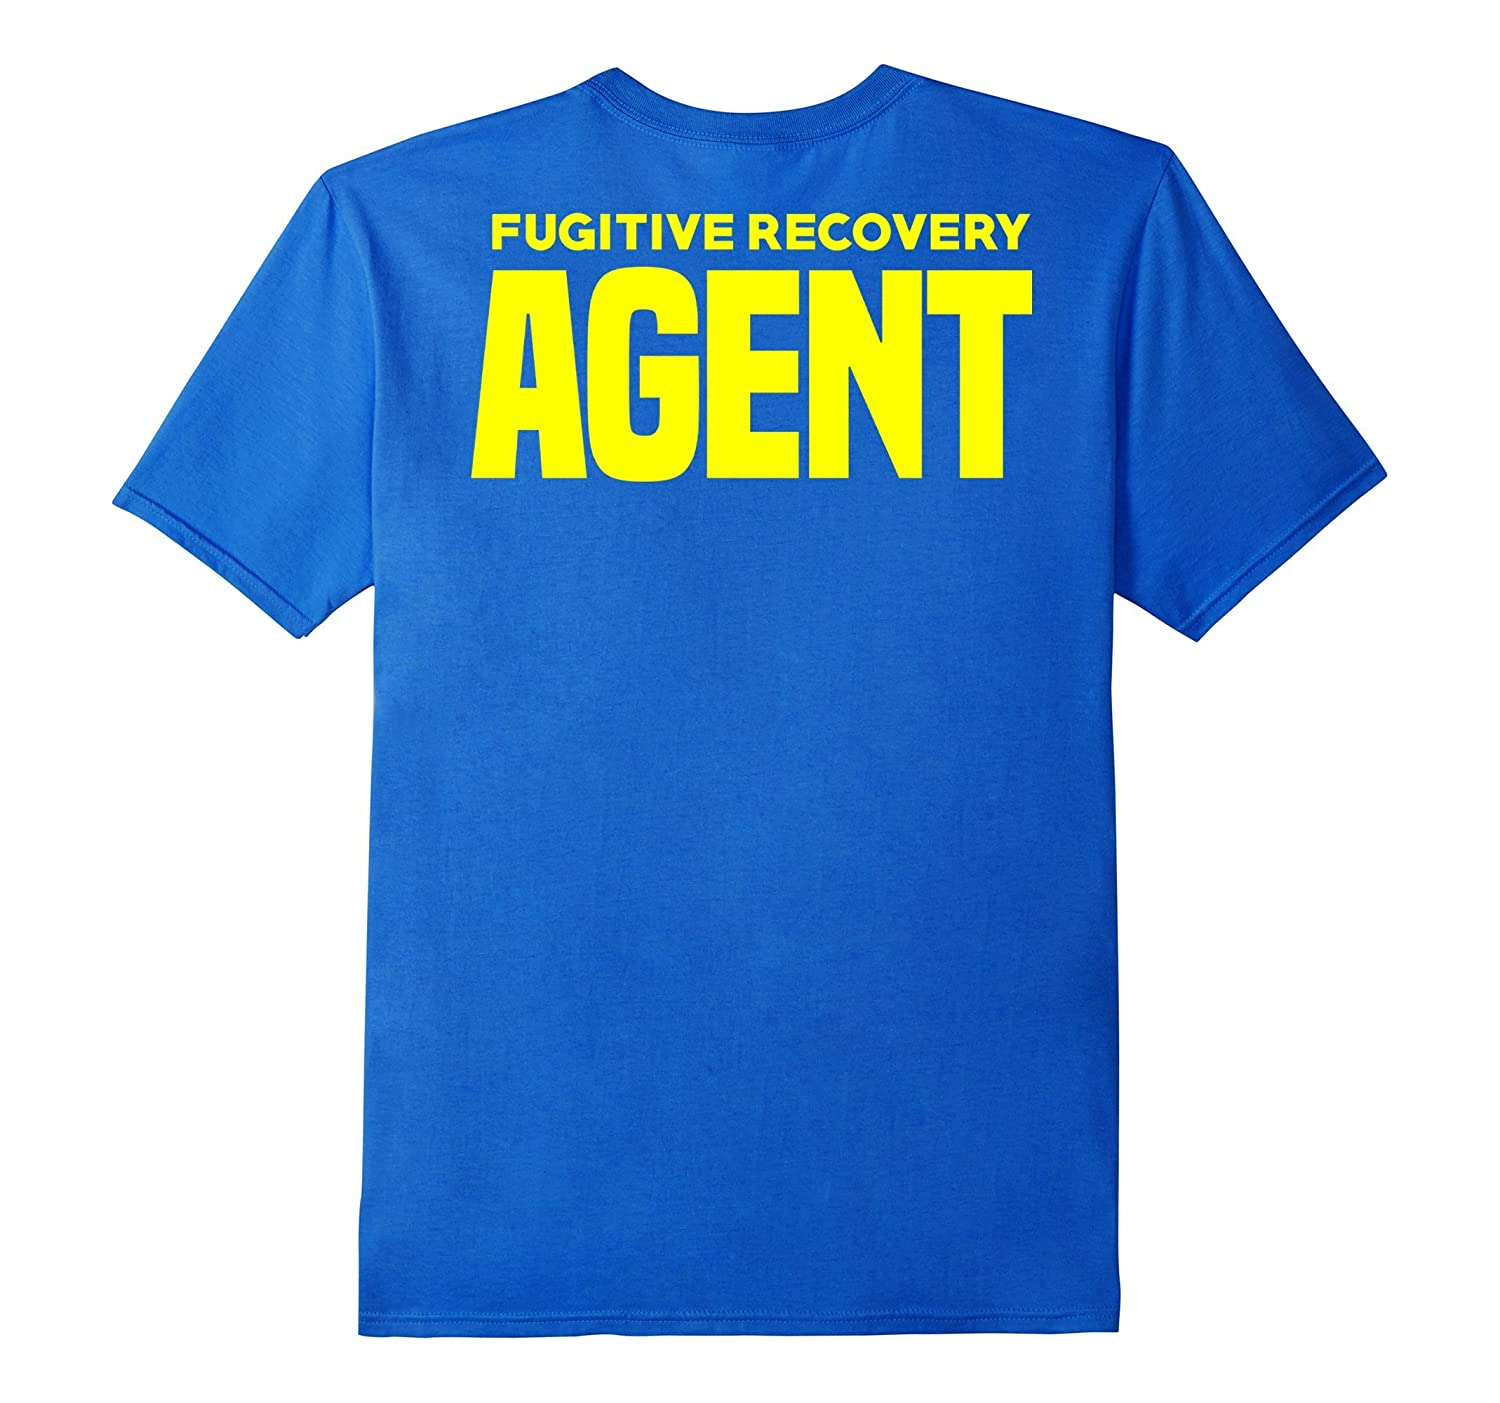 Bounty Hunter T-Shirt for Fugitive Recovery Agents LEO-Art